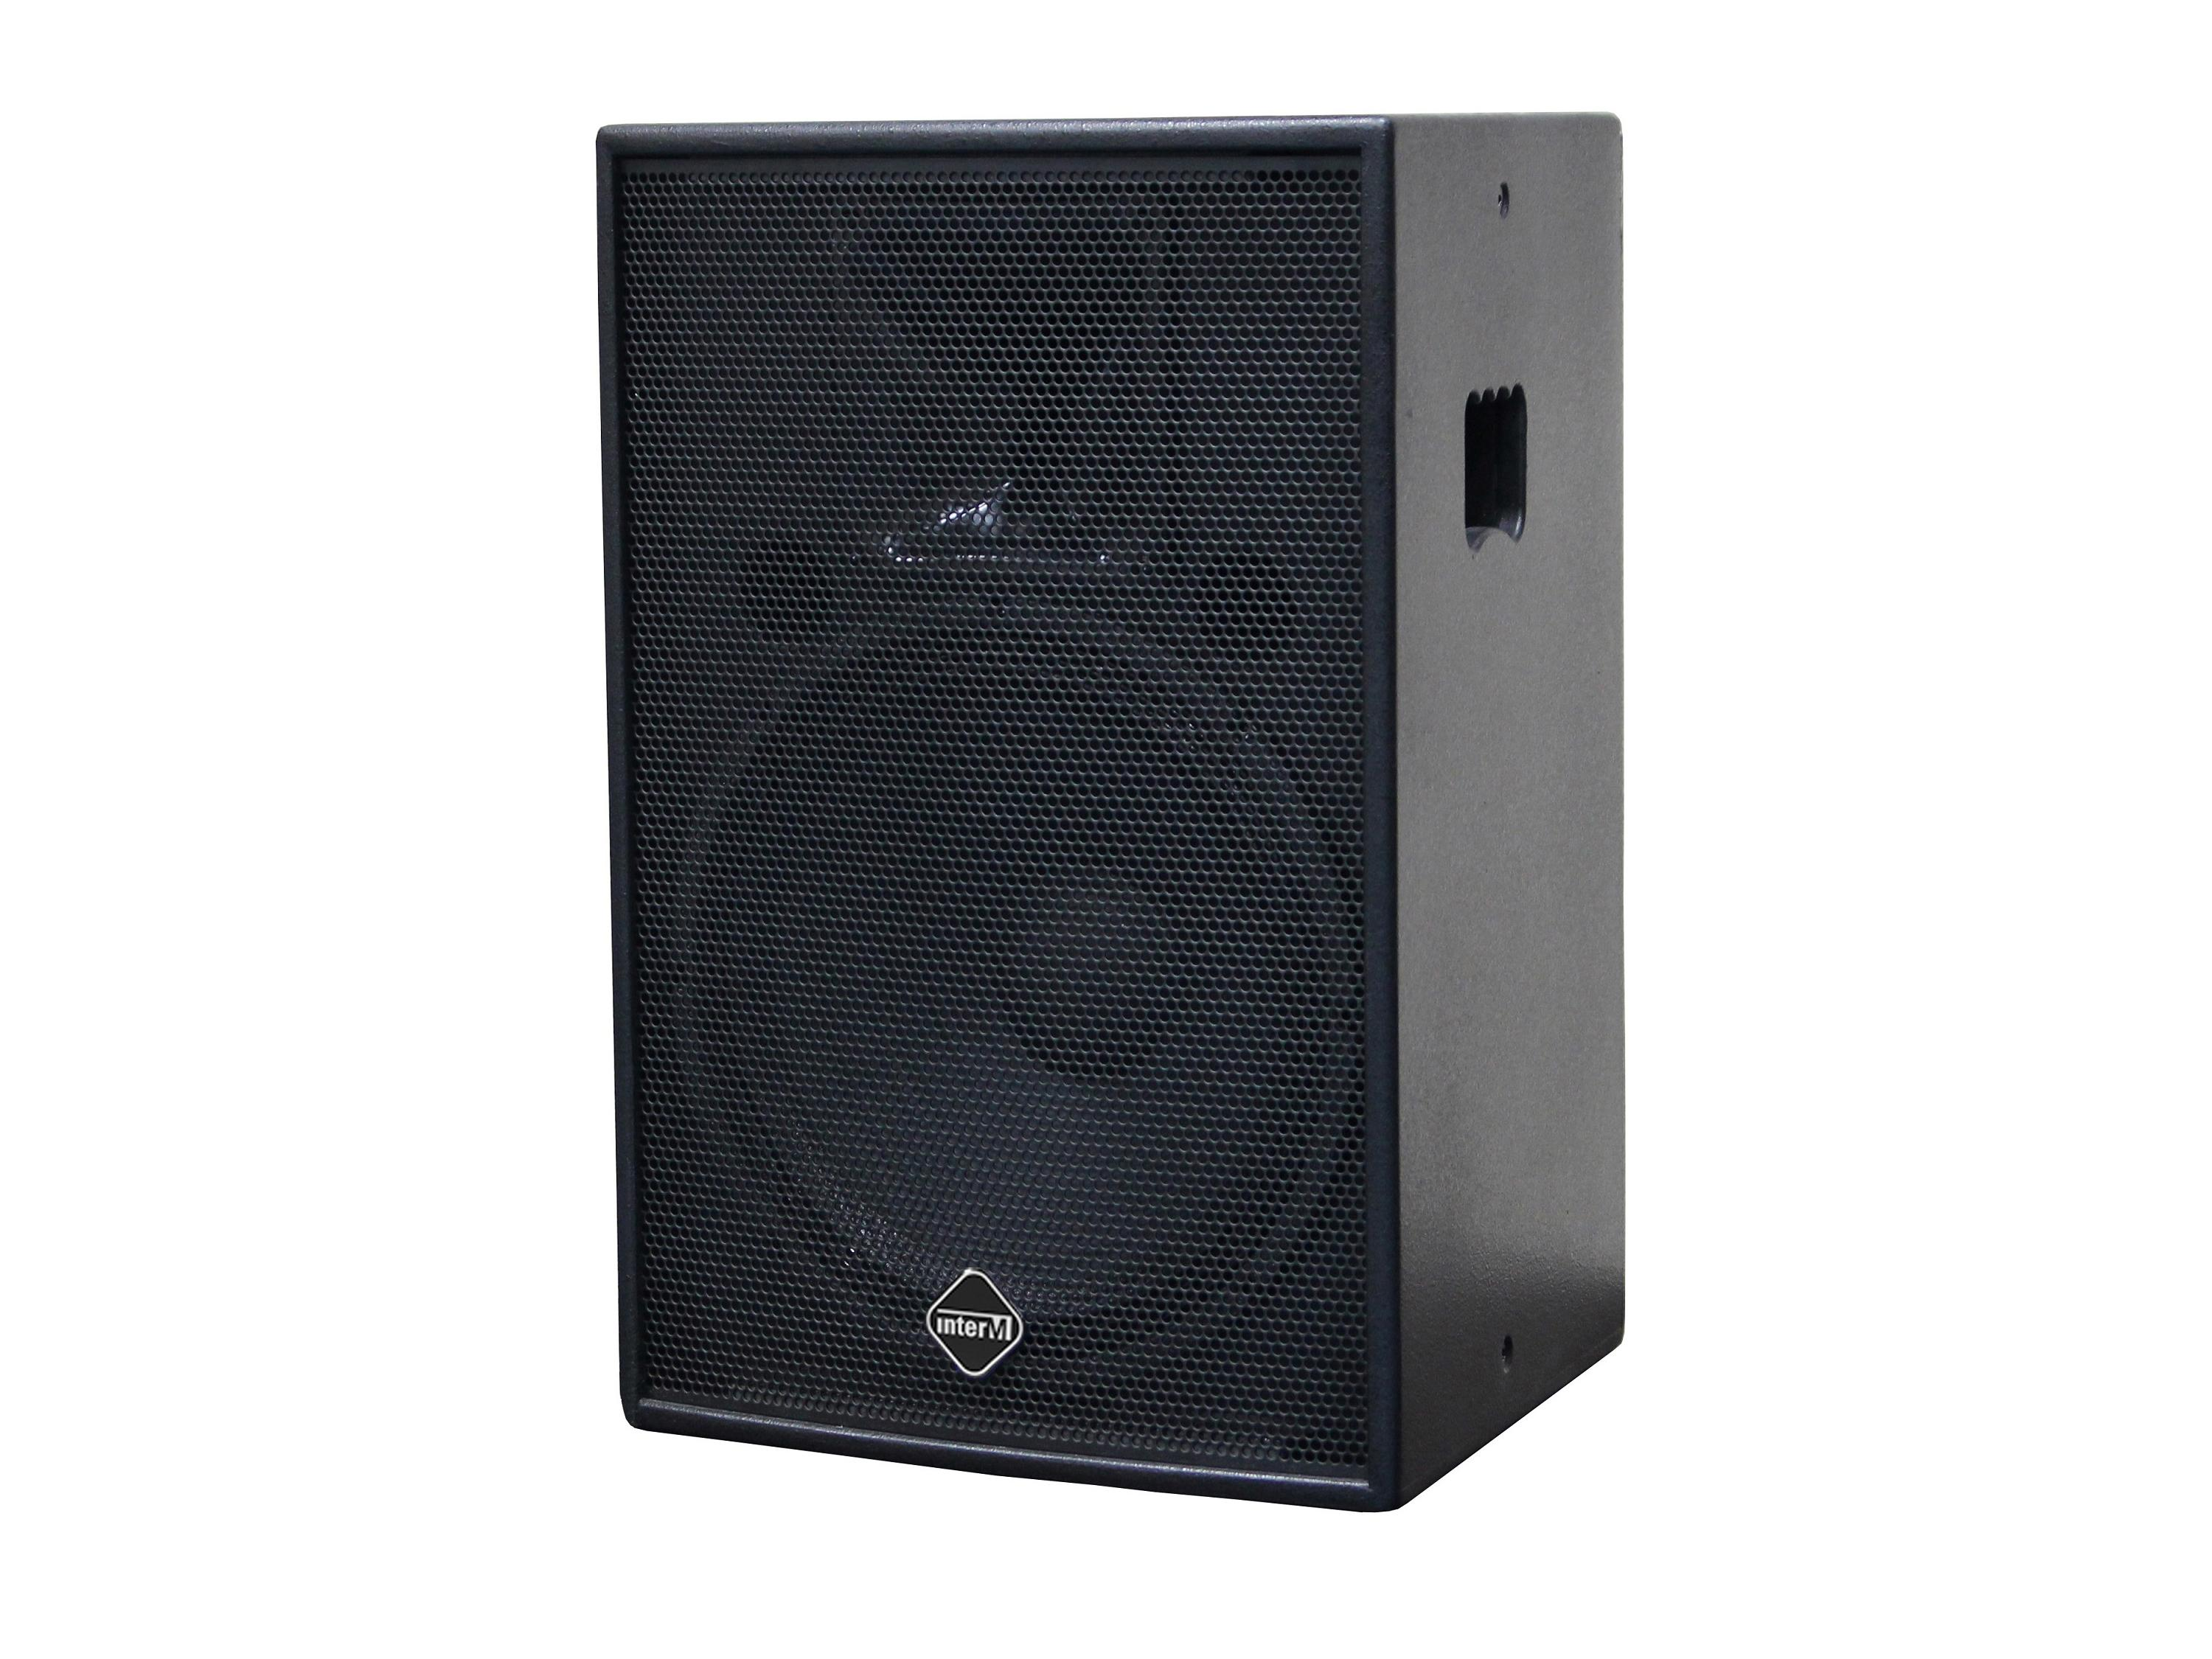 SQ-15K 15 inch 2Way 450W Passive Compact Multi-purpose Loudspeaker/54Hz-20kHz by Inter-M